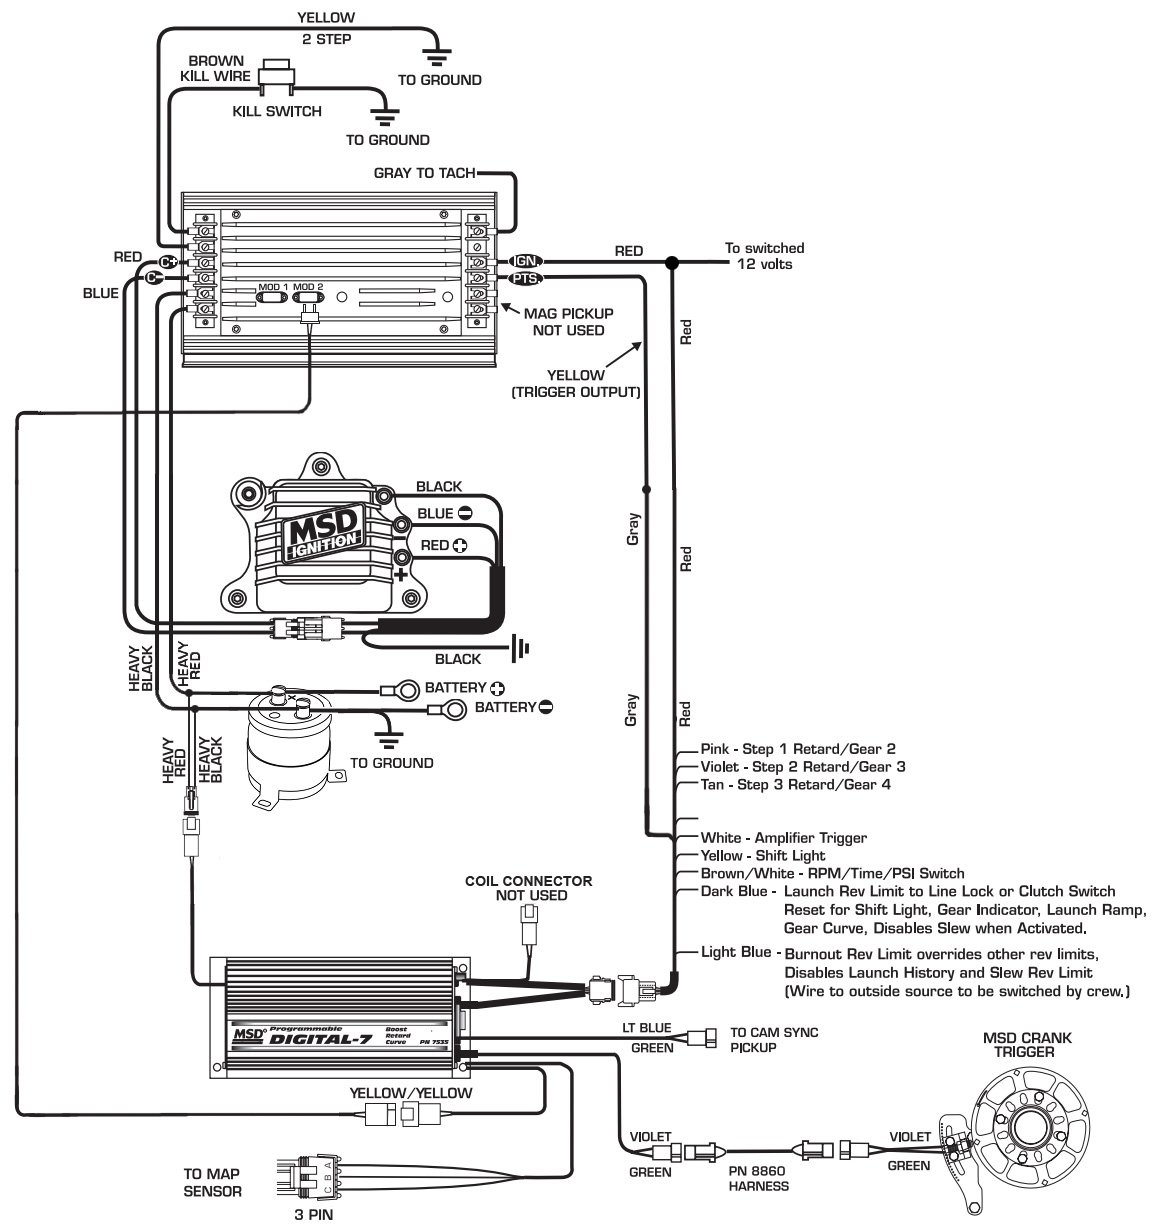 Toyota 20r Msd Ignition Wiring Diagrams Diagram For 1980 Motor